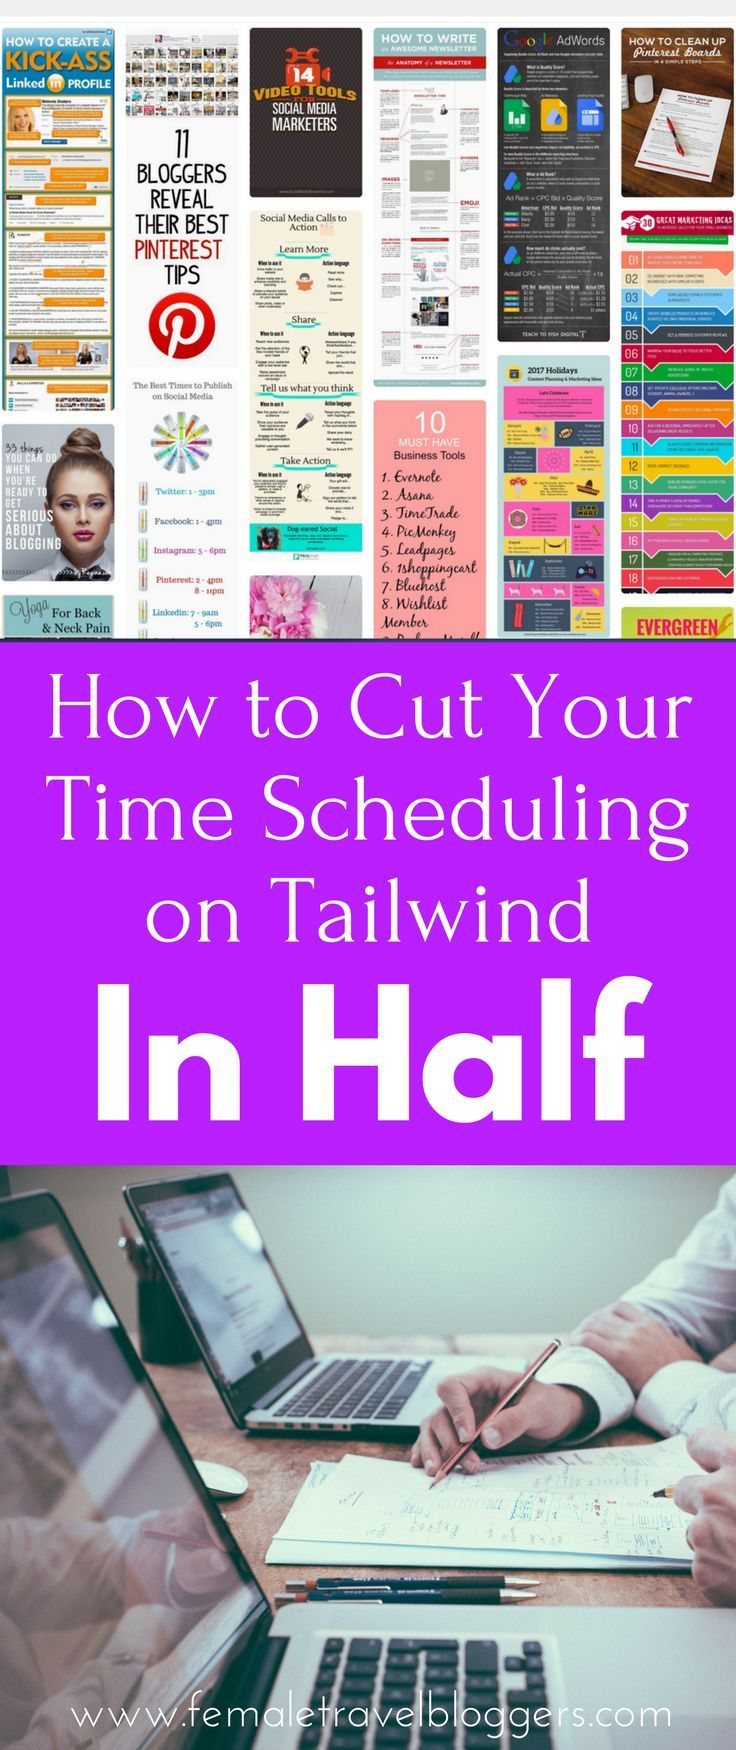 Tailwind can be difficult if you don't know how to use it quickly and efficiently. We will share our top tips to help you cut the time you spend scheduling on Tailwind in HALF! If you're looking for a way to streamline your Pinterest strategy and spend more time focusing on other aspects of your blog, you found it. Make sure you save this Tailwind guide to your blogging board so you can find it later.